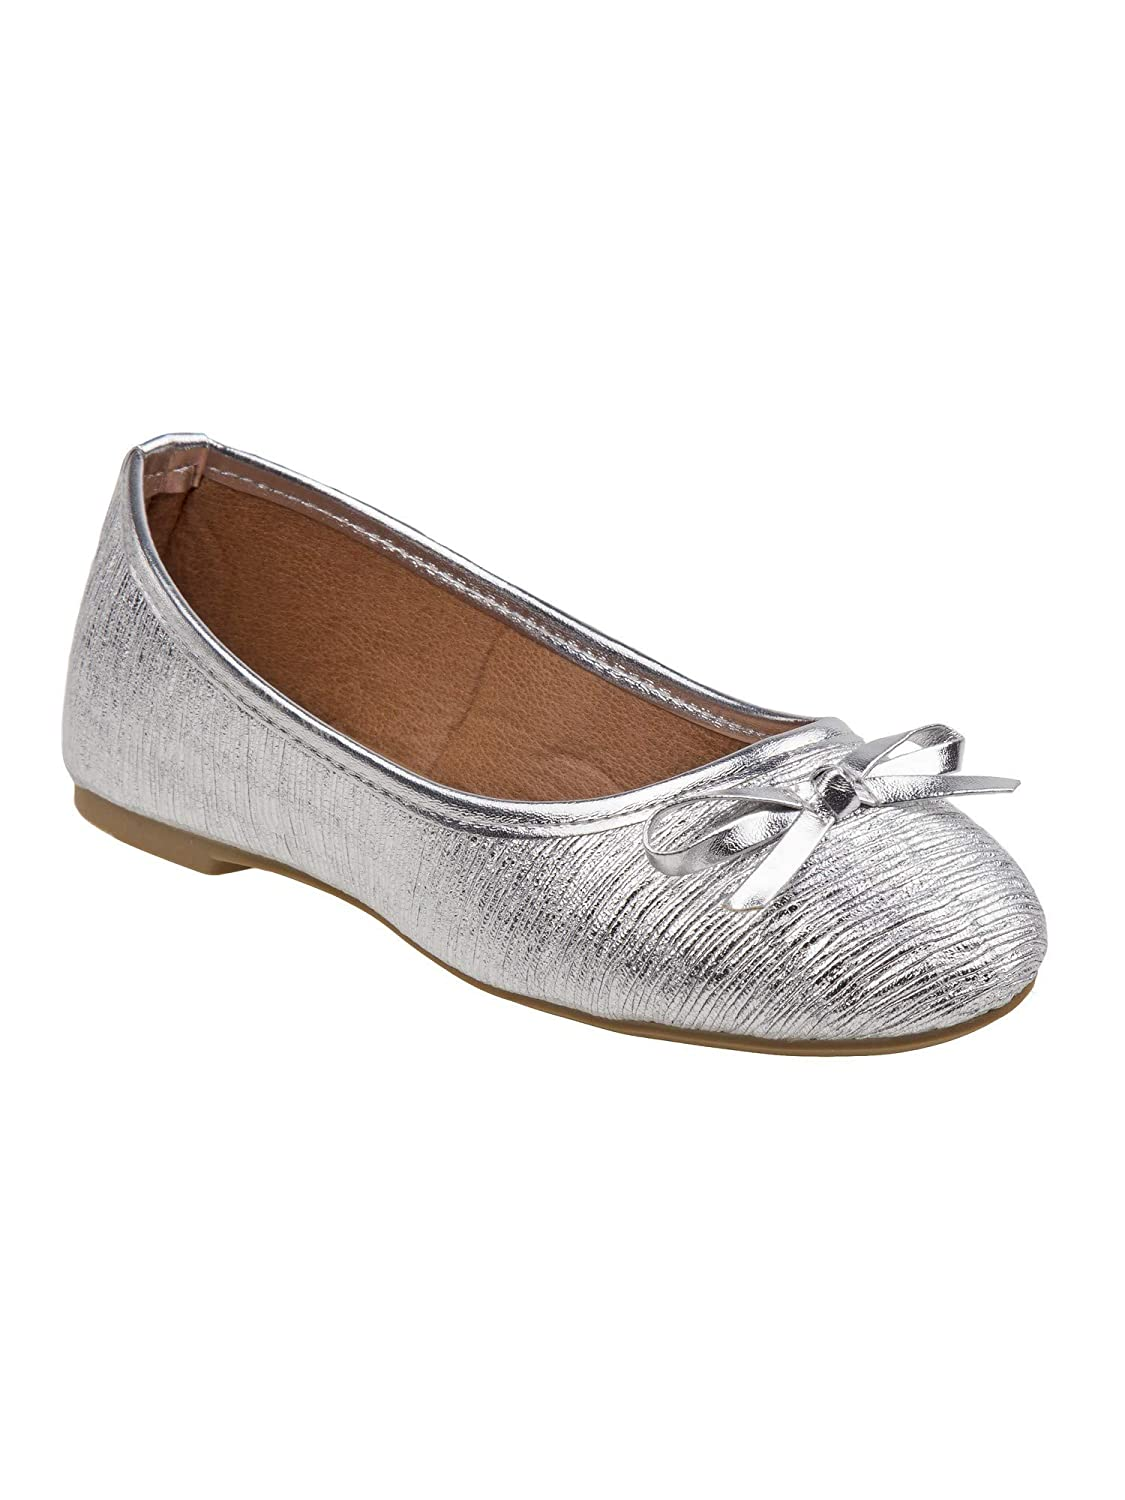 Rugged Bear Girls Silver Textured Finish Bow Accent Casual Flats 11-4 Kids